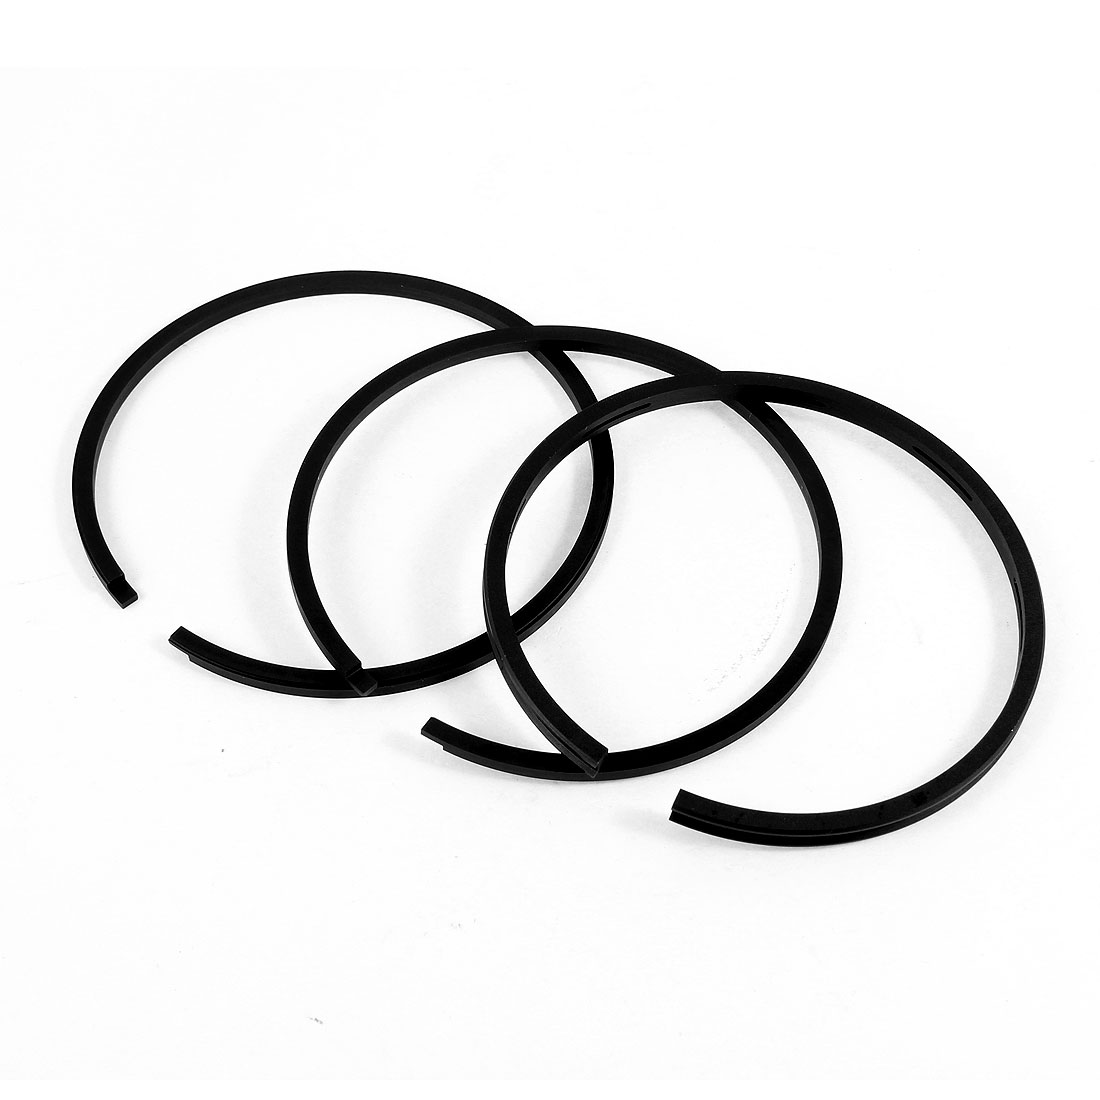 Black Metal 87mm Inside Diameter Balance Sealing Piston Ring Set 3 in 1